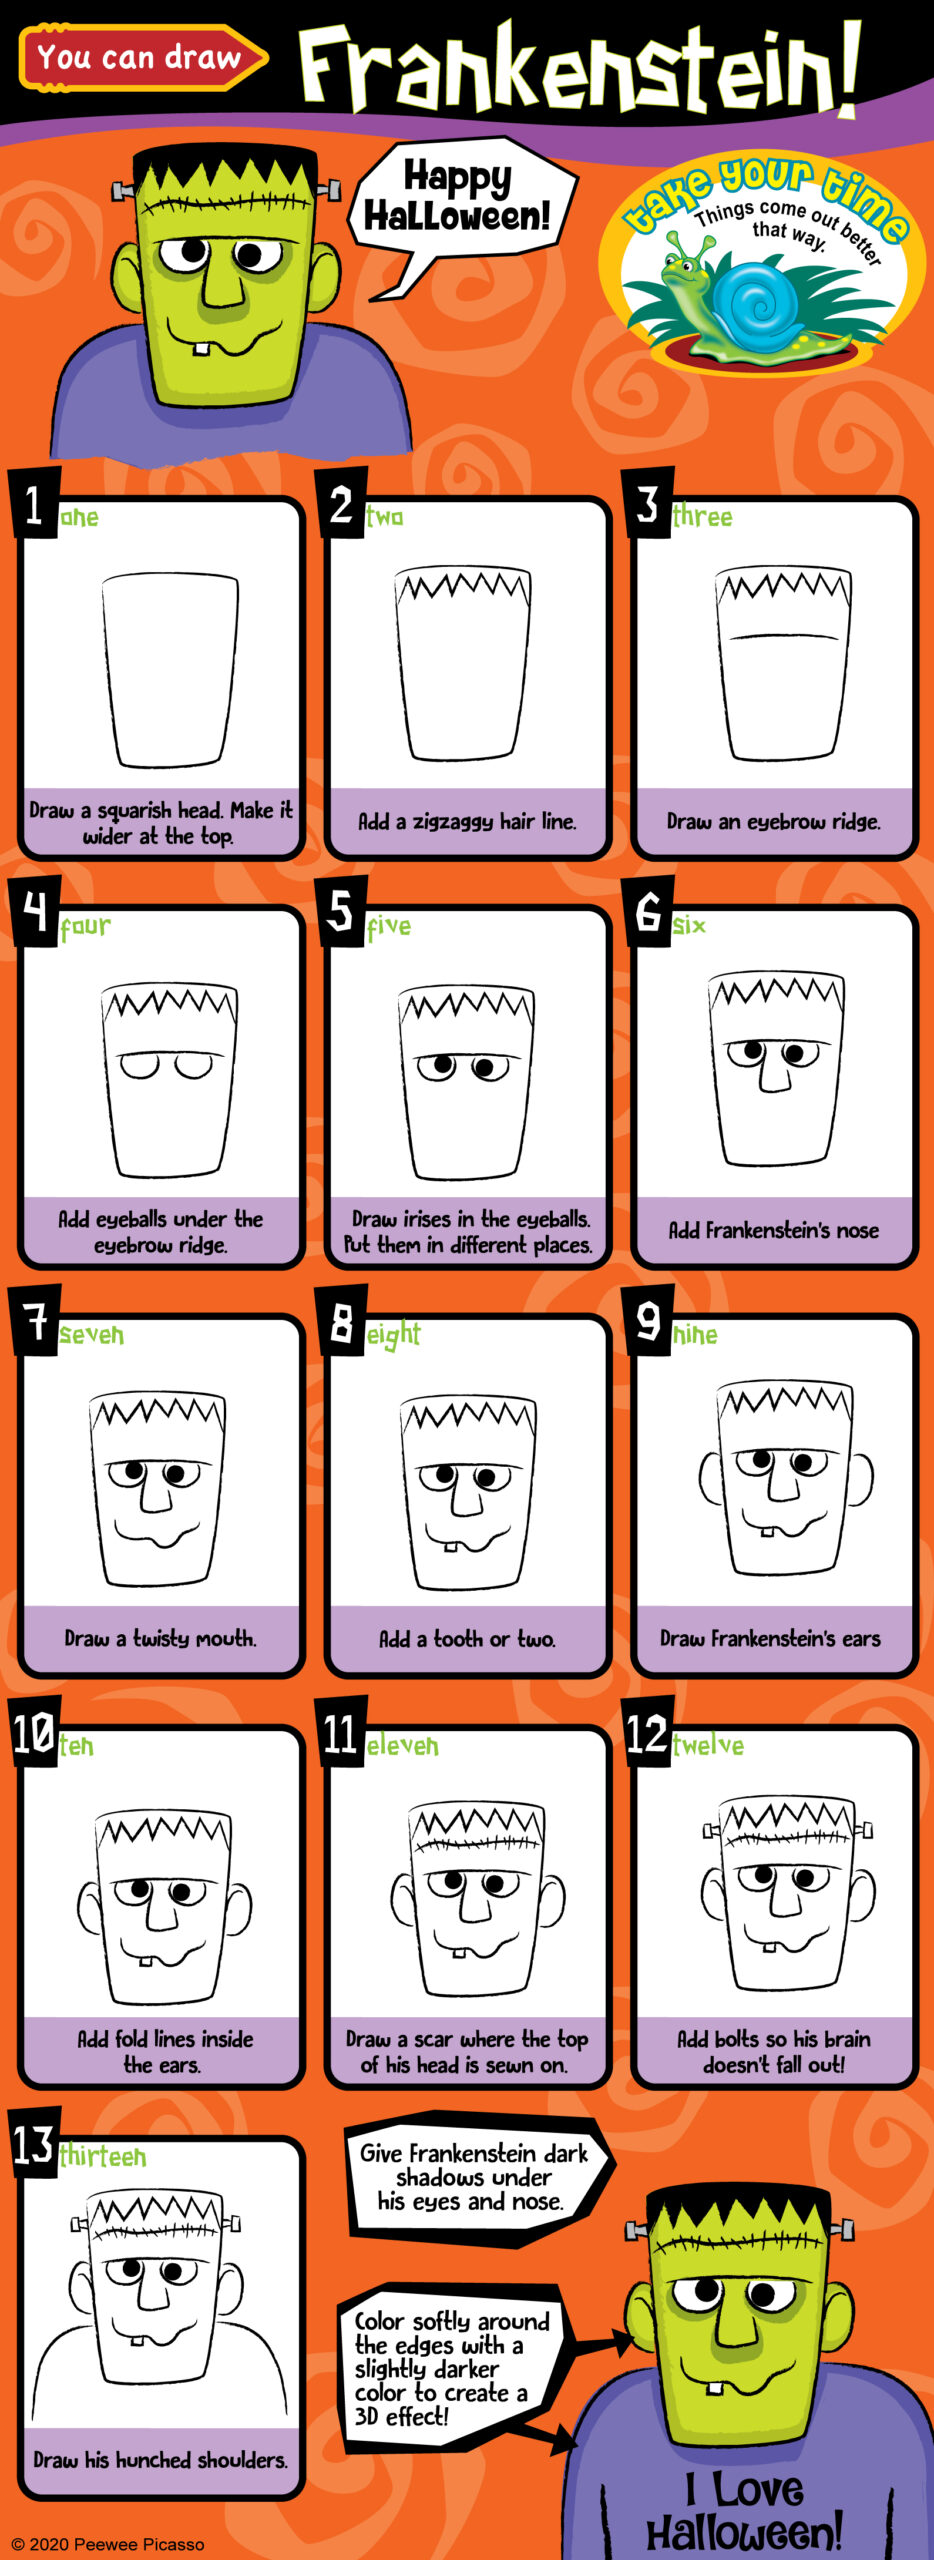 step-by-step how to draw a cute and friendly Frankenstein monster for kids